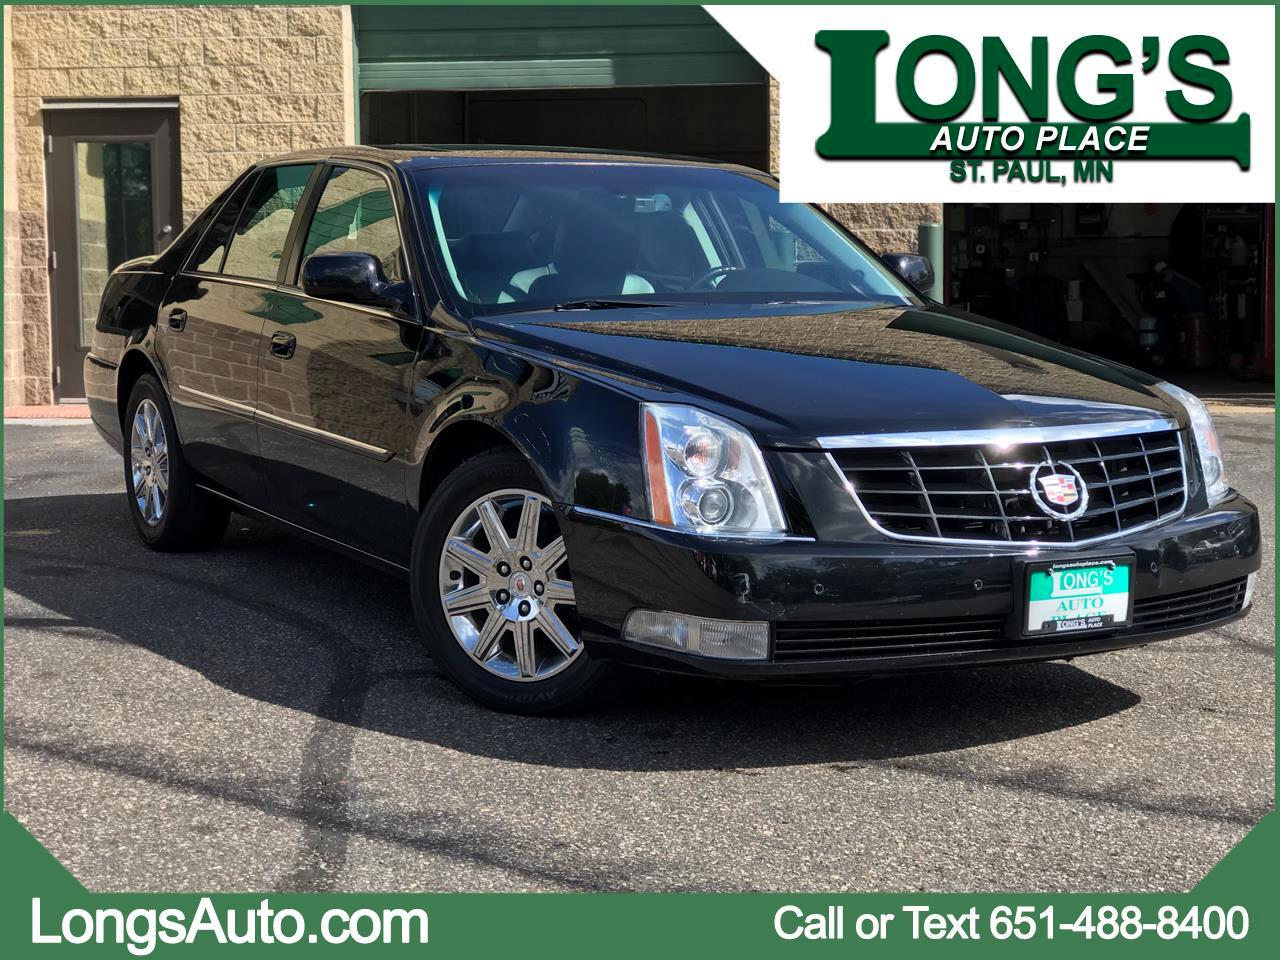 2010 Cadillac DTS 4dr Sdn w/1SD